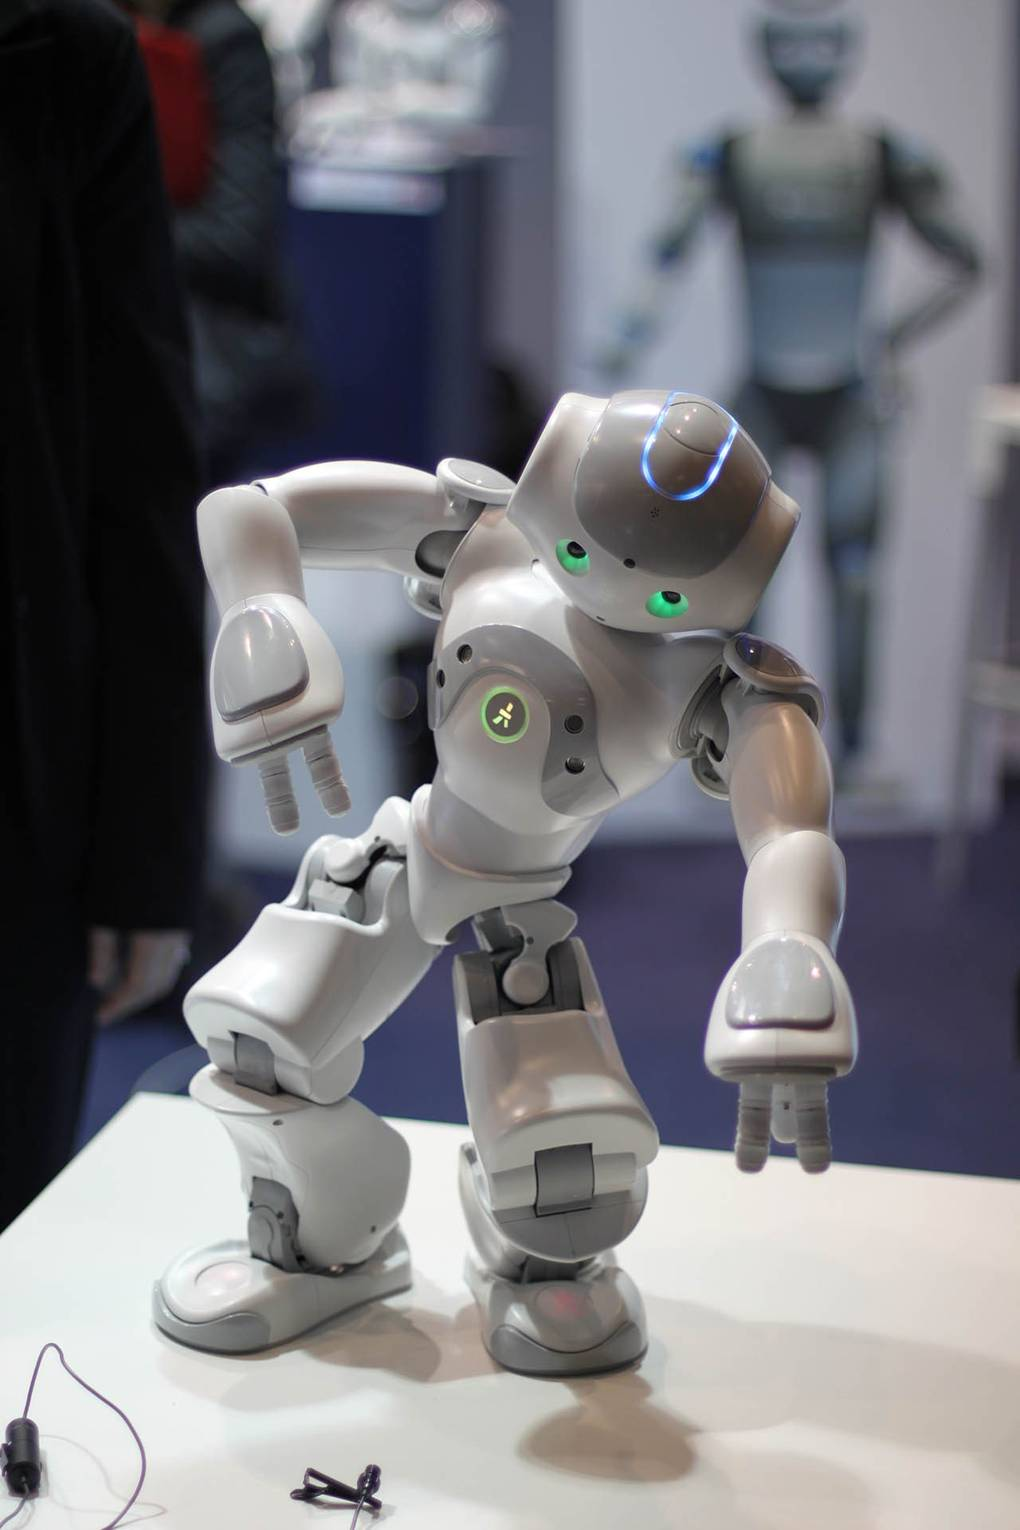 Creationists buy robot to study technology's impact on